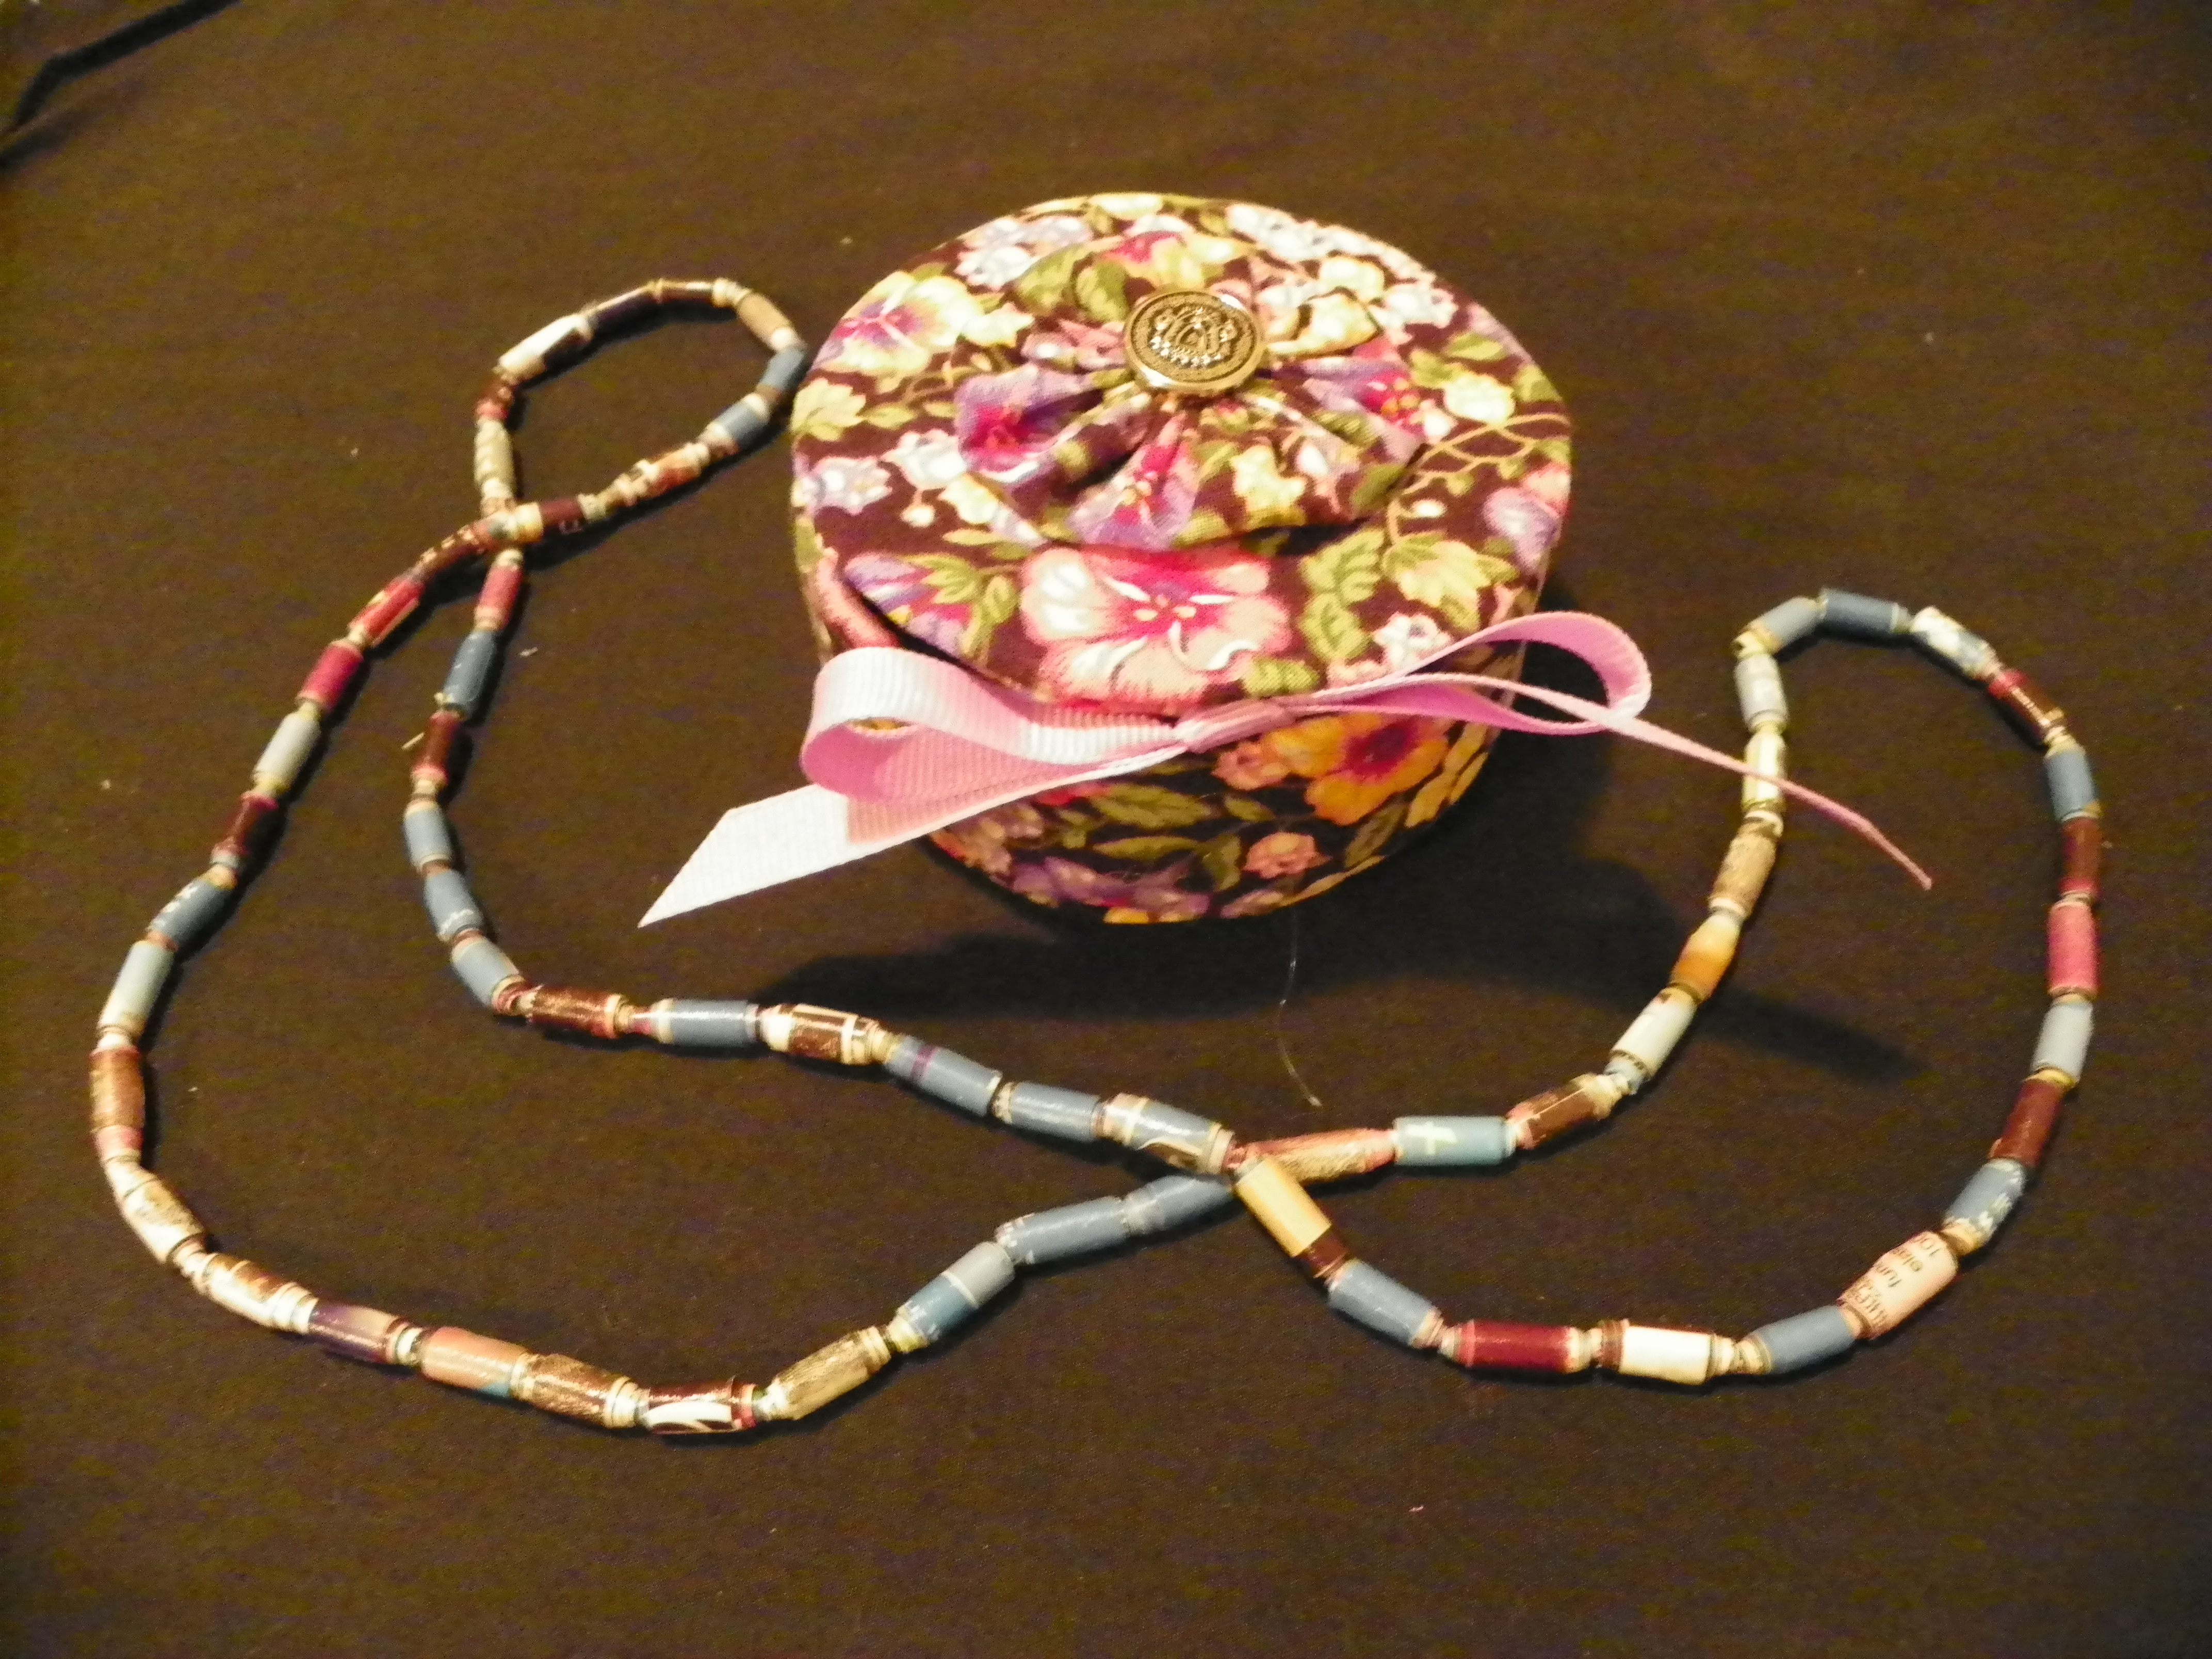 Tuna fish can jewelry box and paper beads